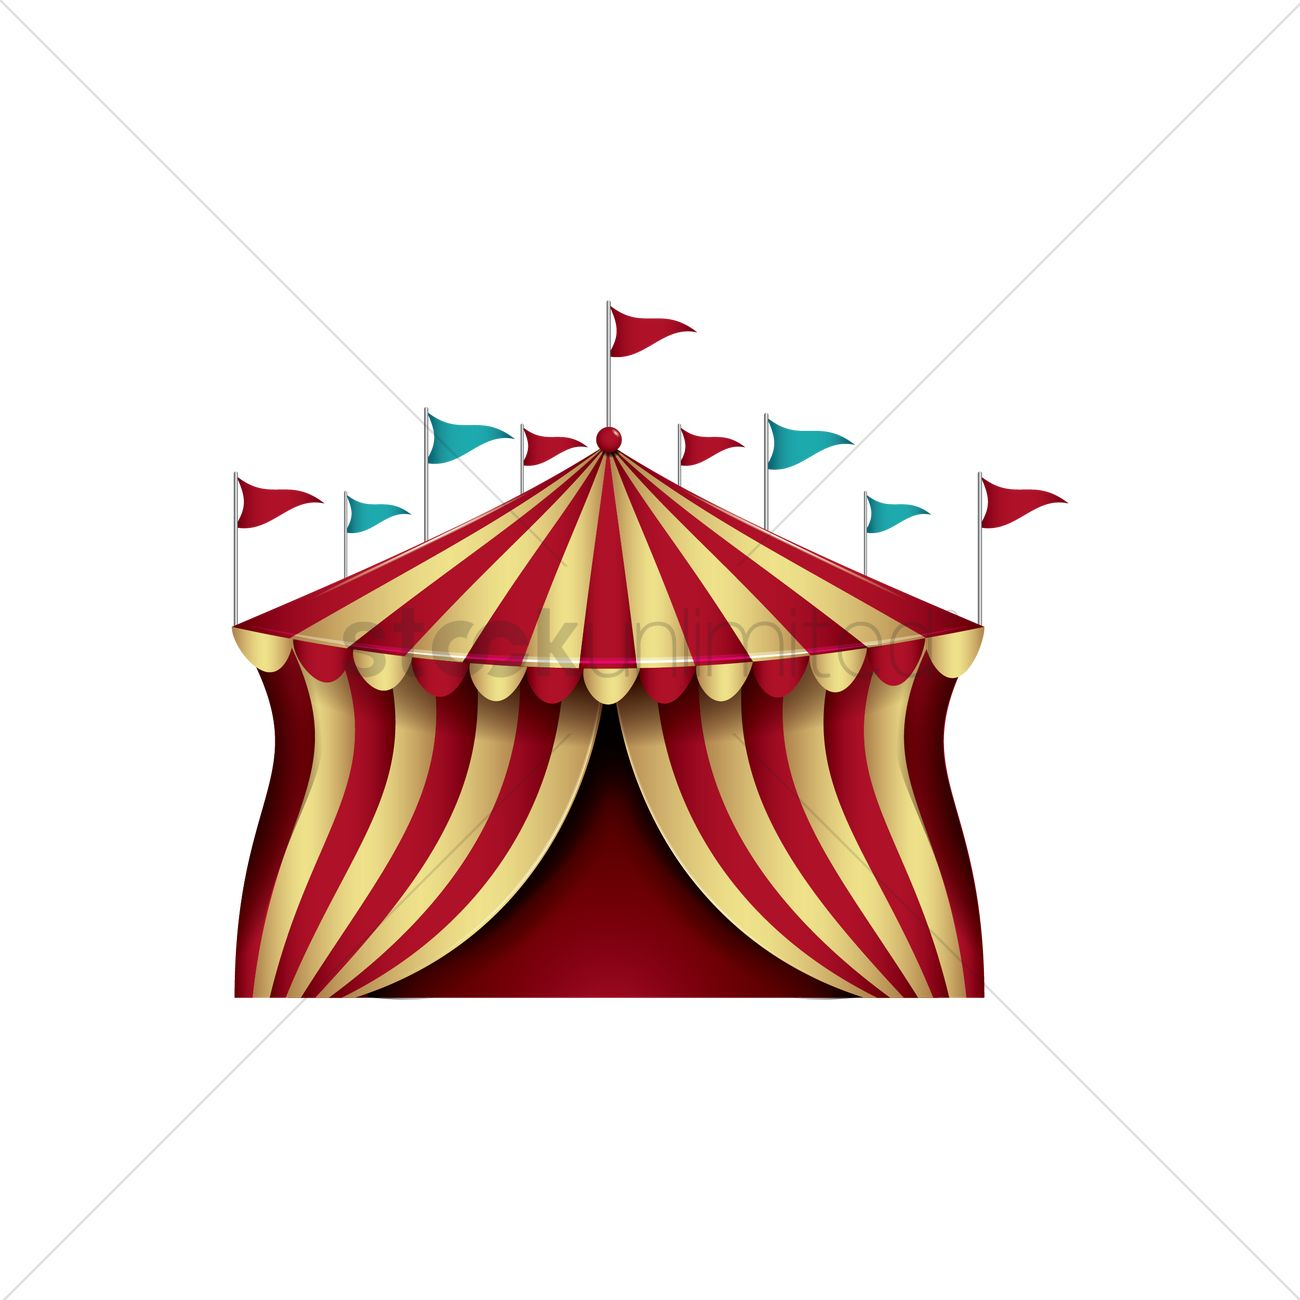 circus tent vector graphic  sc 1 st  StockUnlimited & Circus tent Vector Image - 1989257 | StockUnlimited